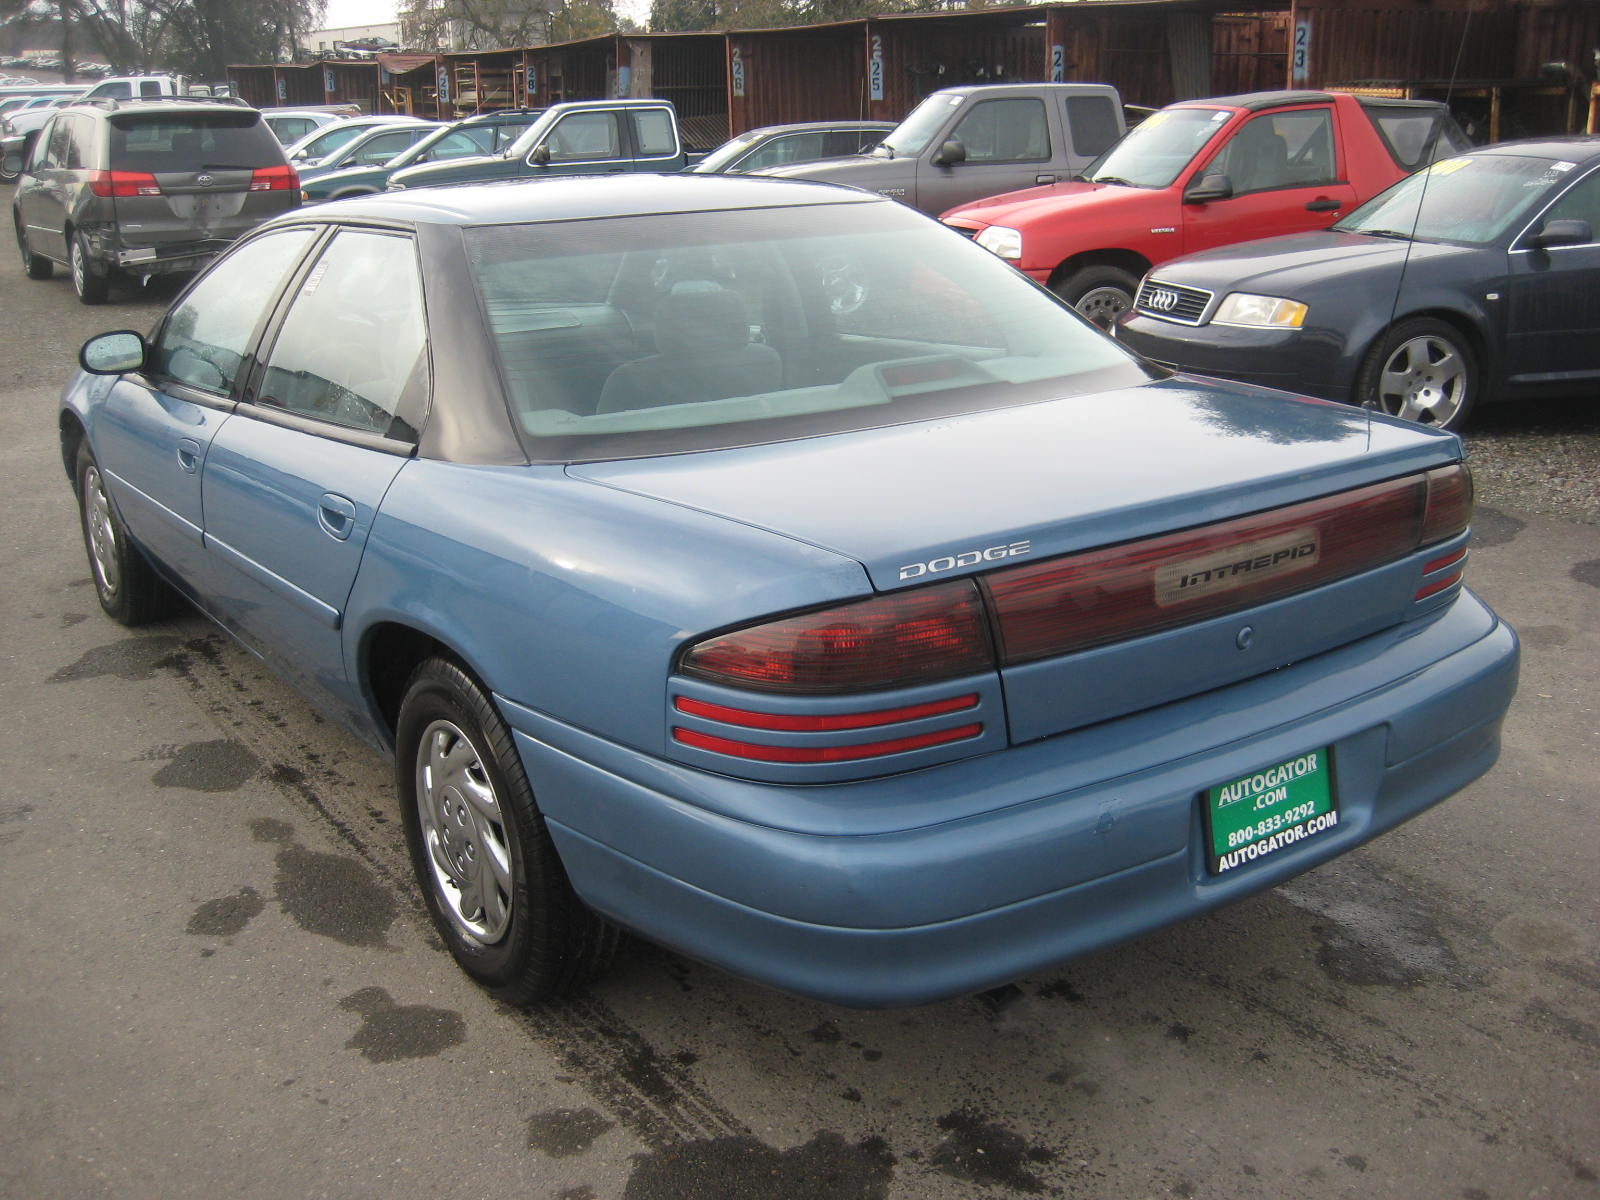 1995 Dodge Intrepid #19